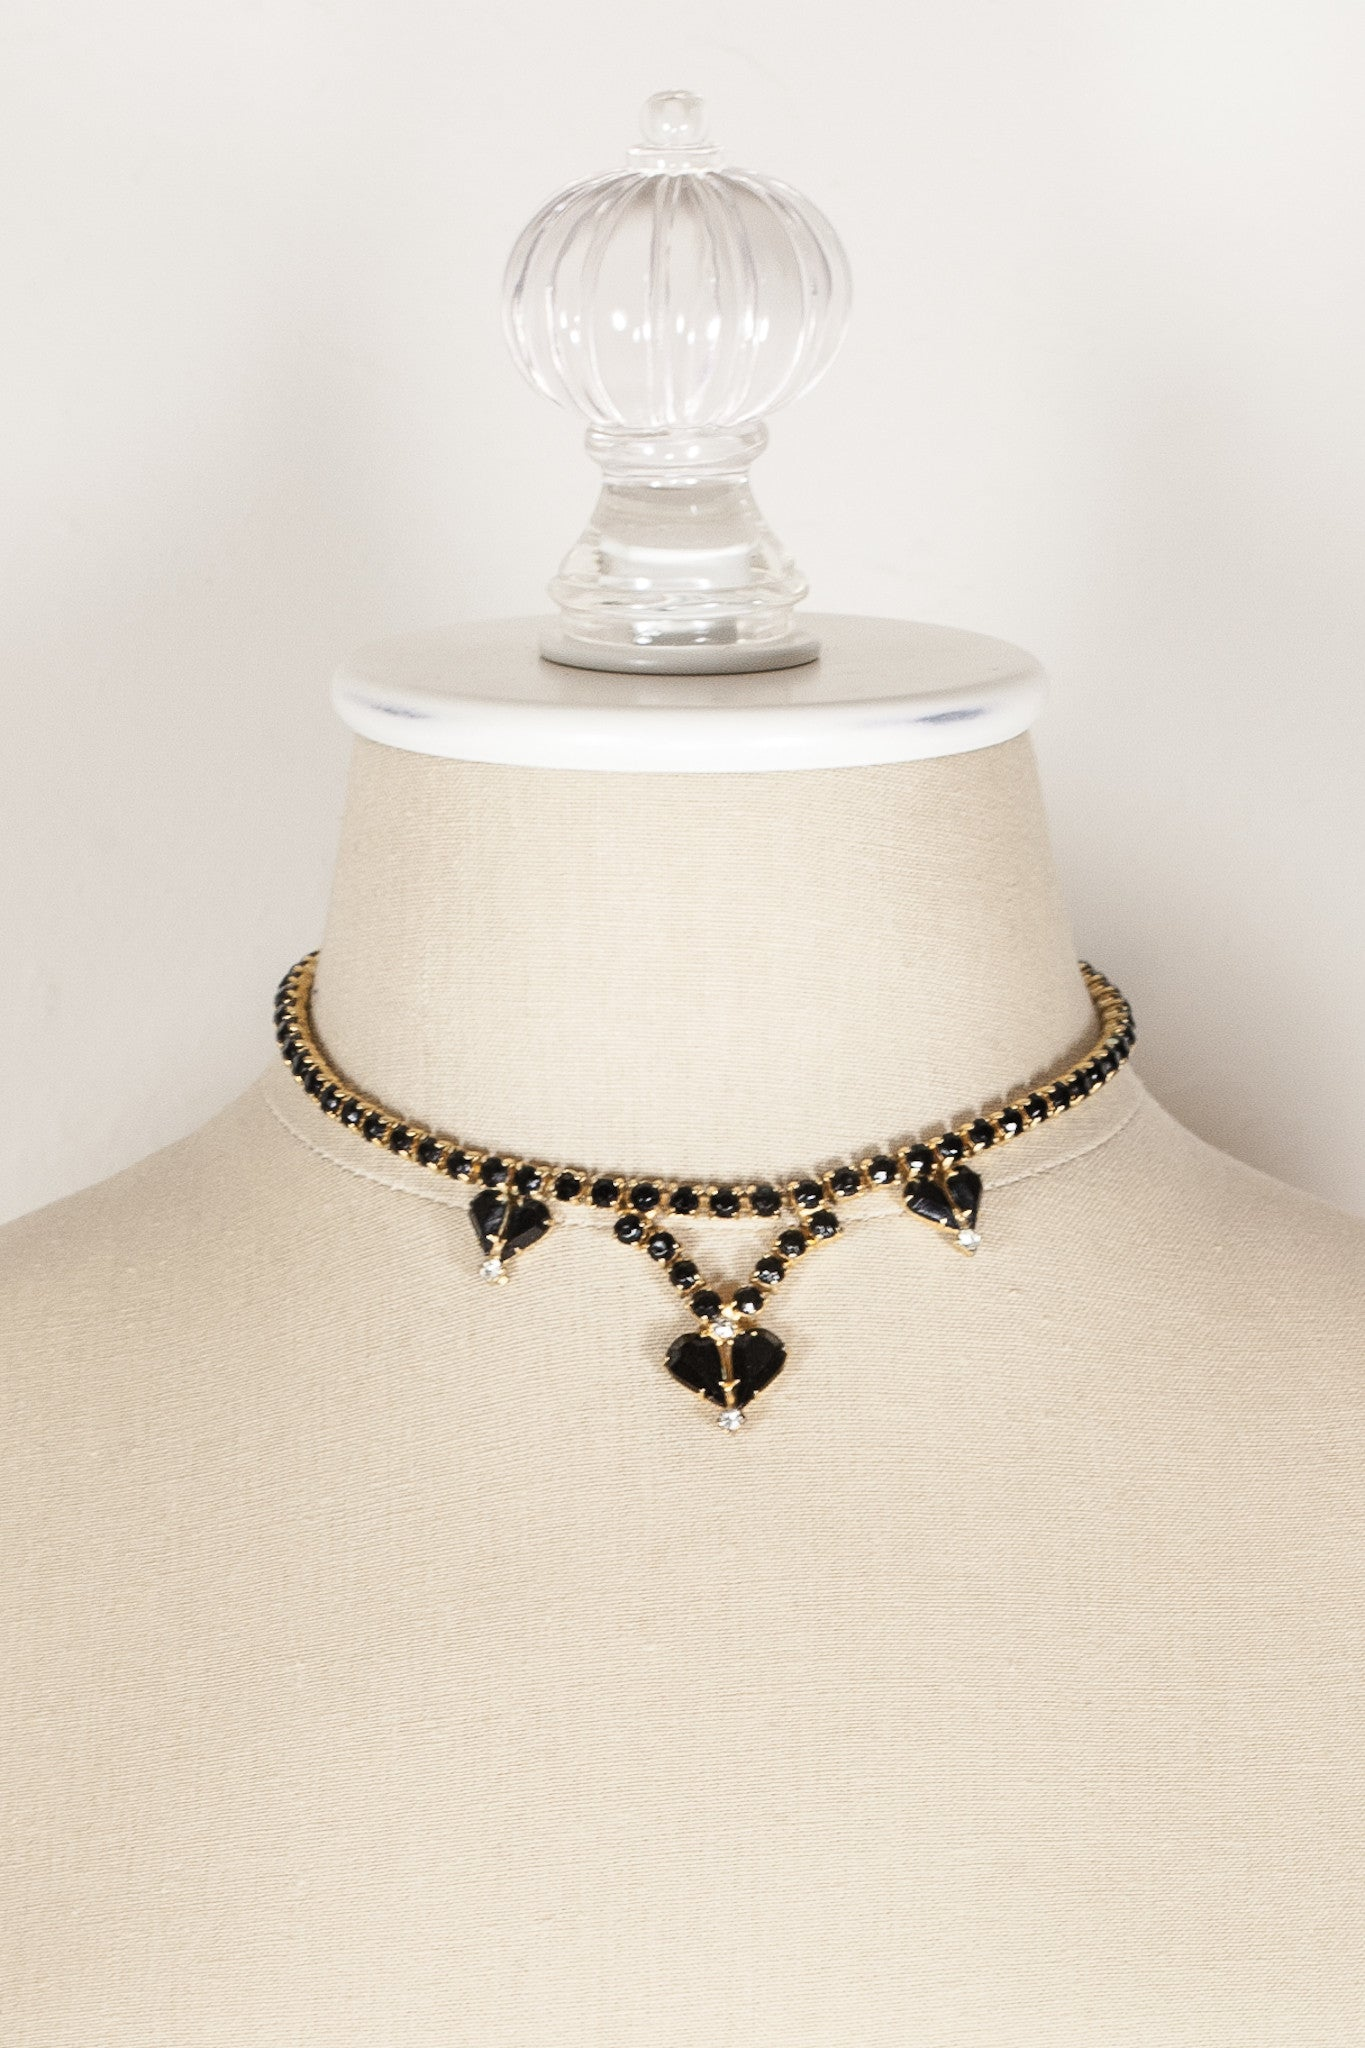 70's__Vintage__Black Rhinestone Drop Necklace